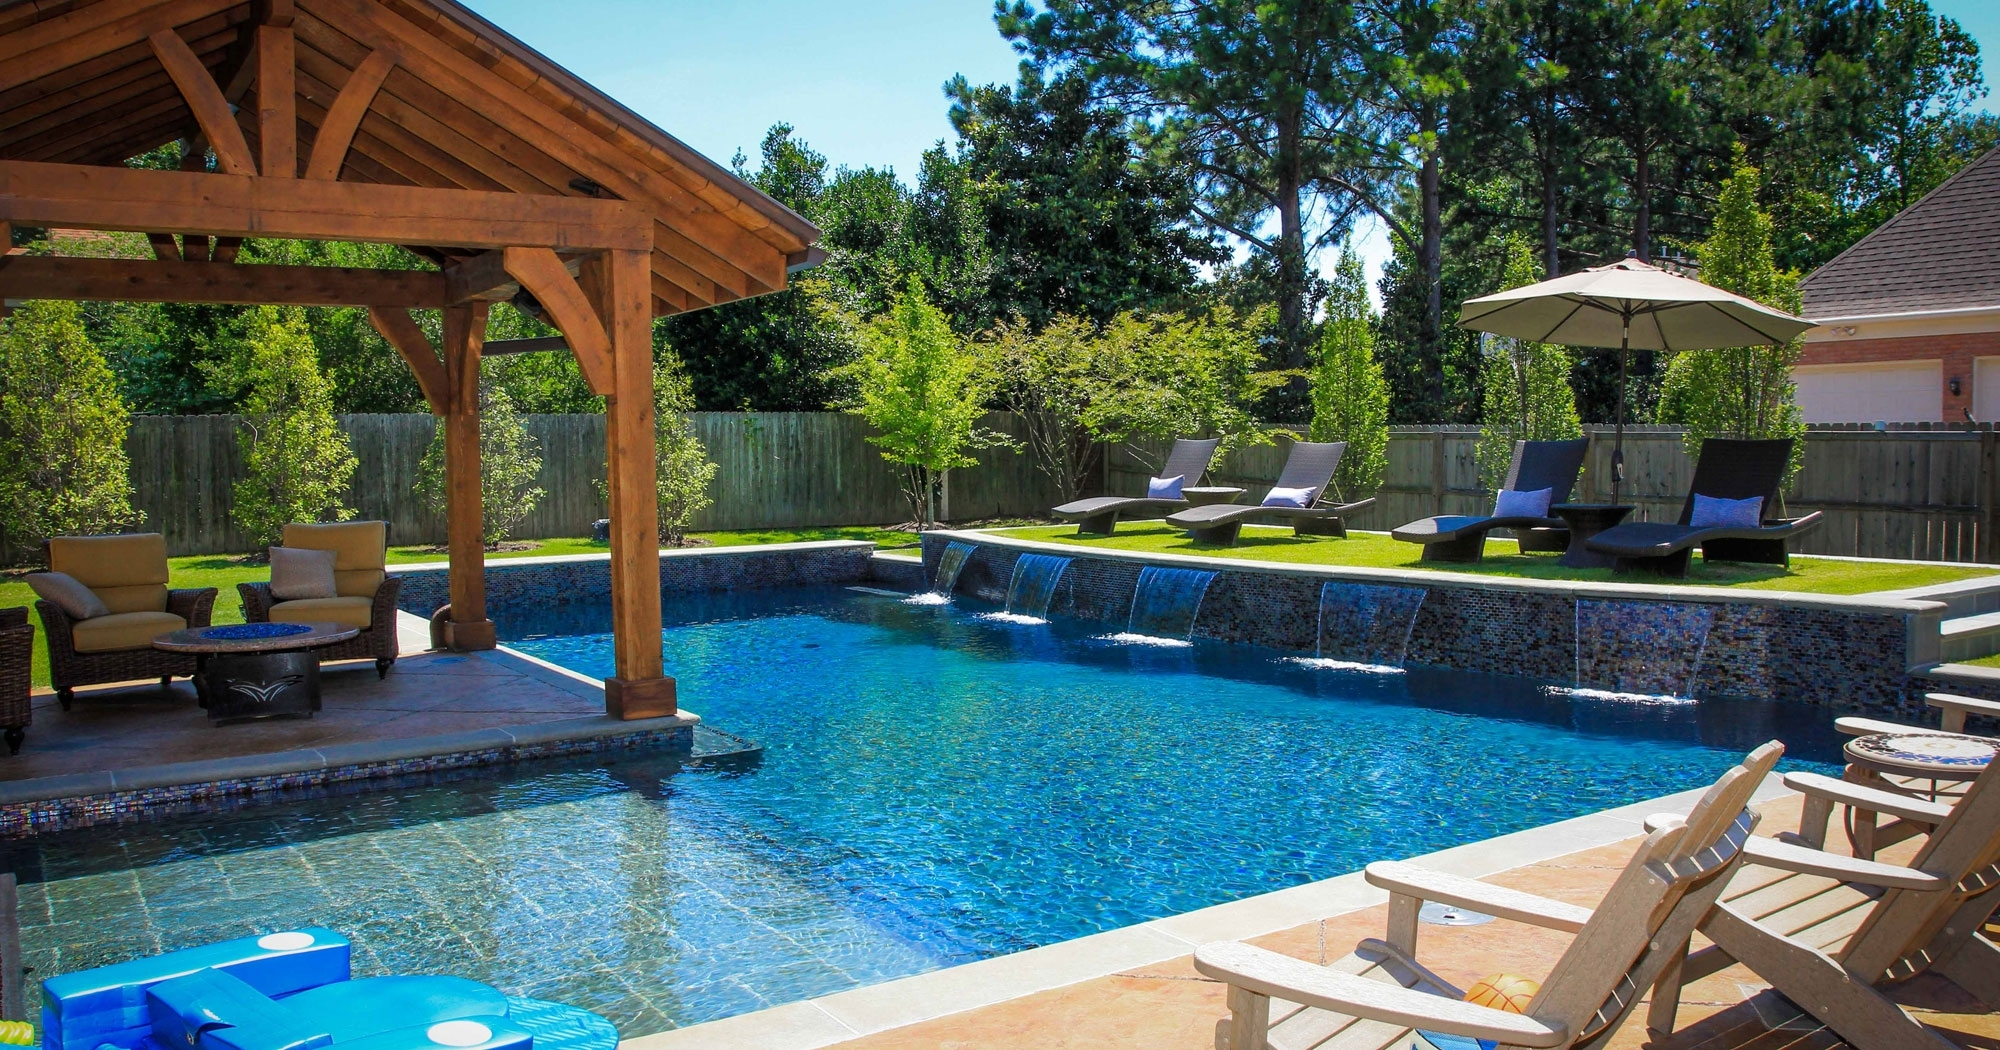 Fascinating Backyard Pool Design Ideas Along With Maple Wood throughout 15 Awesome Designs of How to Craft Pool And Backyard Design Ideas